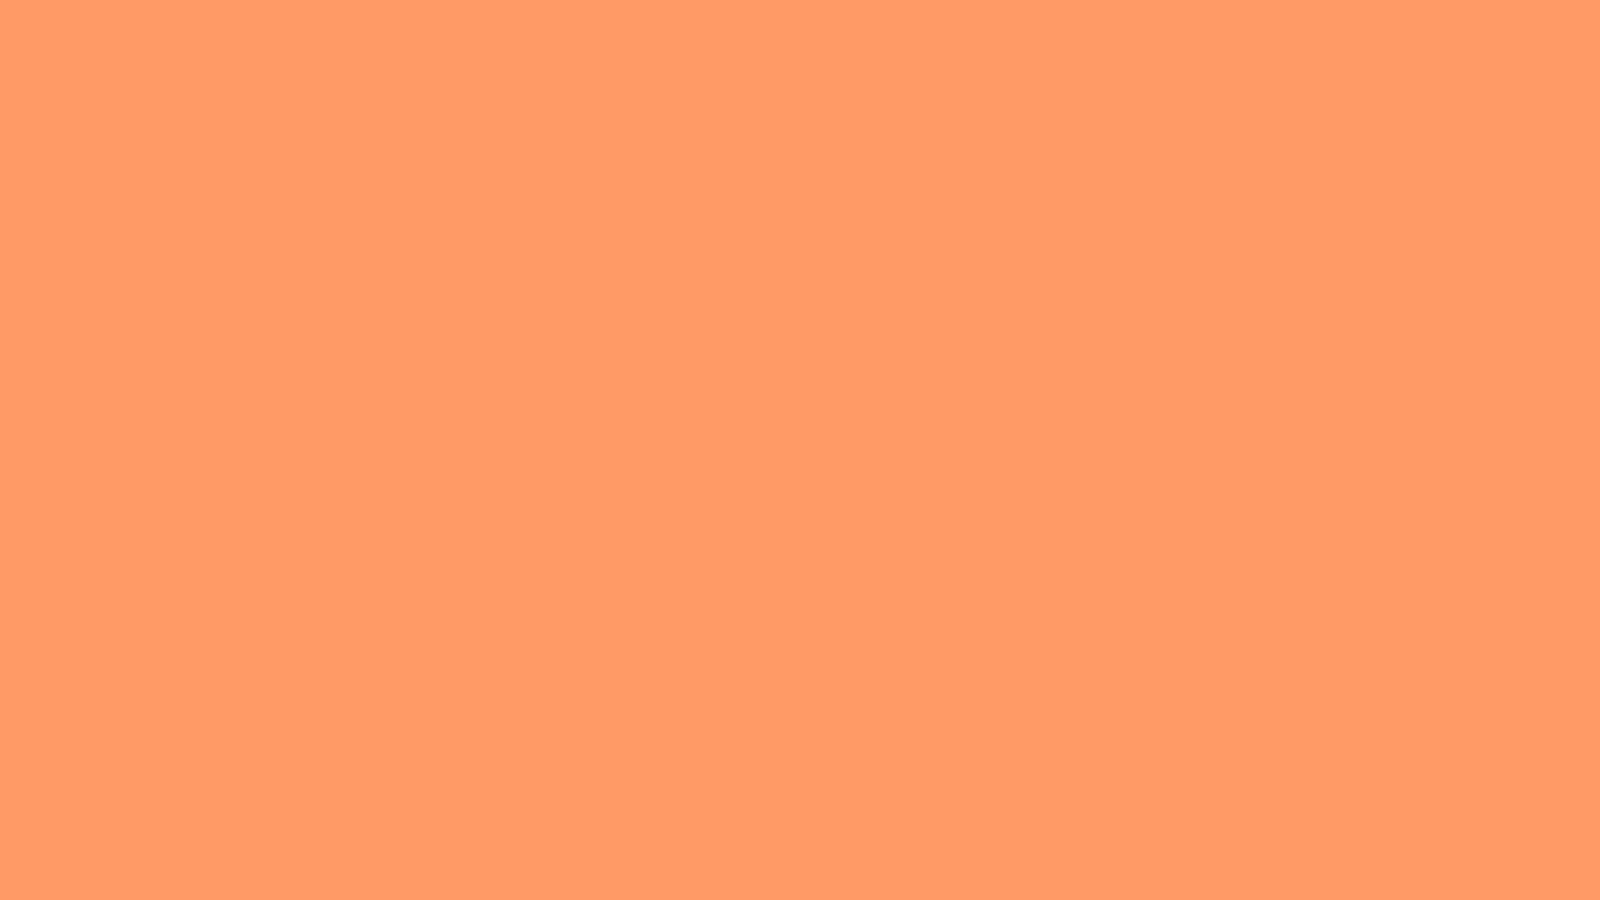 1600x900 Atomic Tangerine Solid Color Background